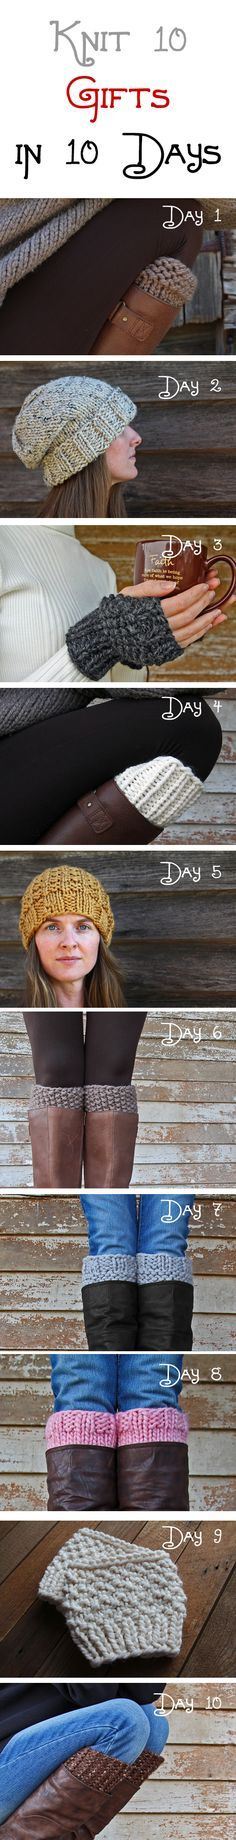 Knit 10 Gifts in 10 Days | Brome Fields - knitting patterns for quick & easy gifts